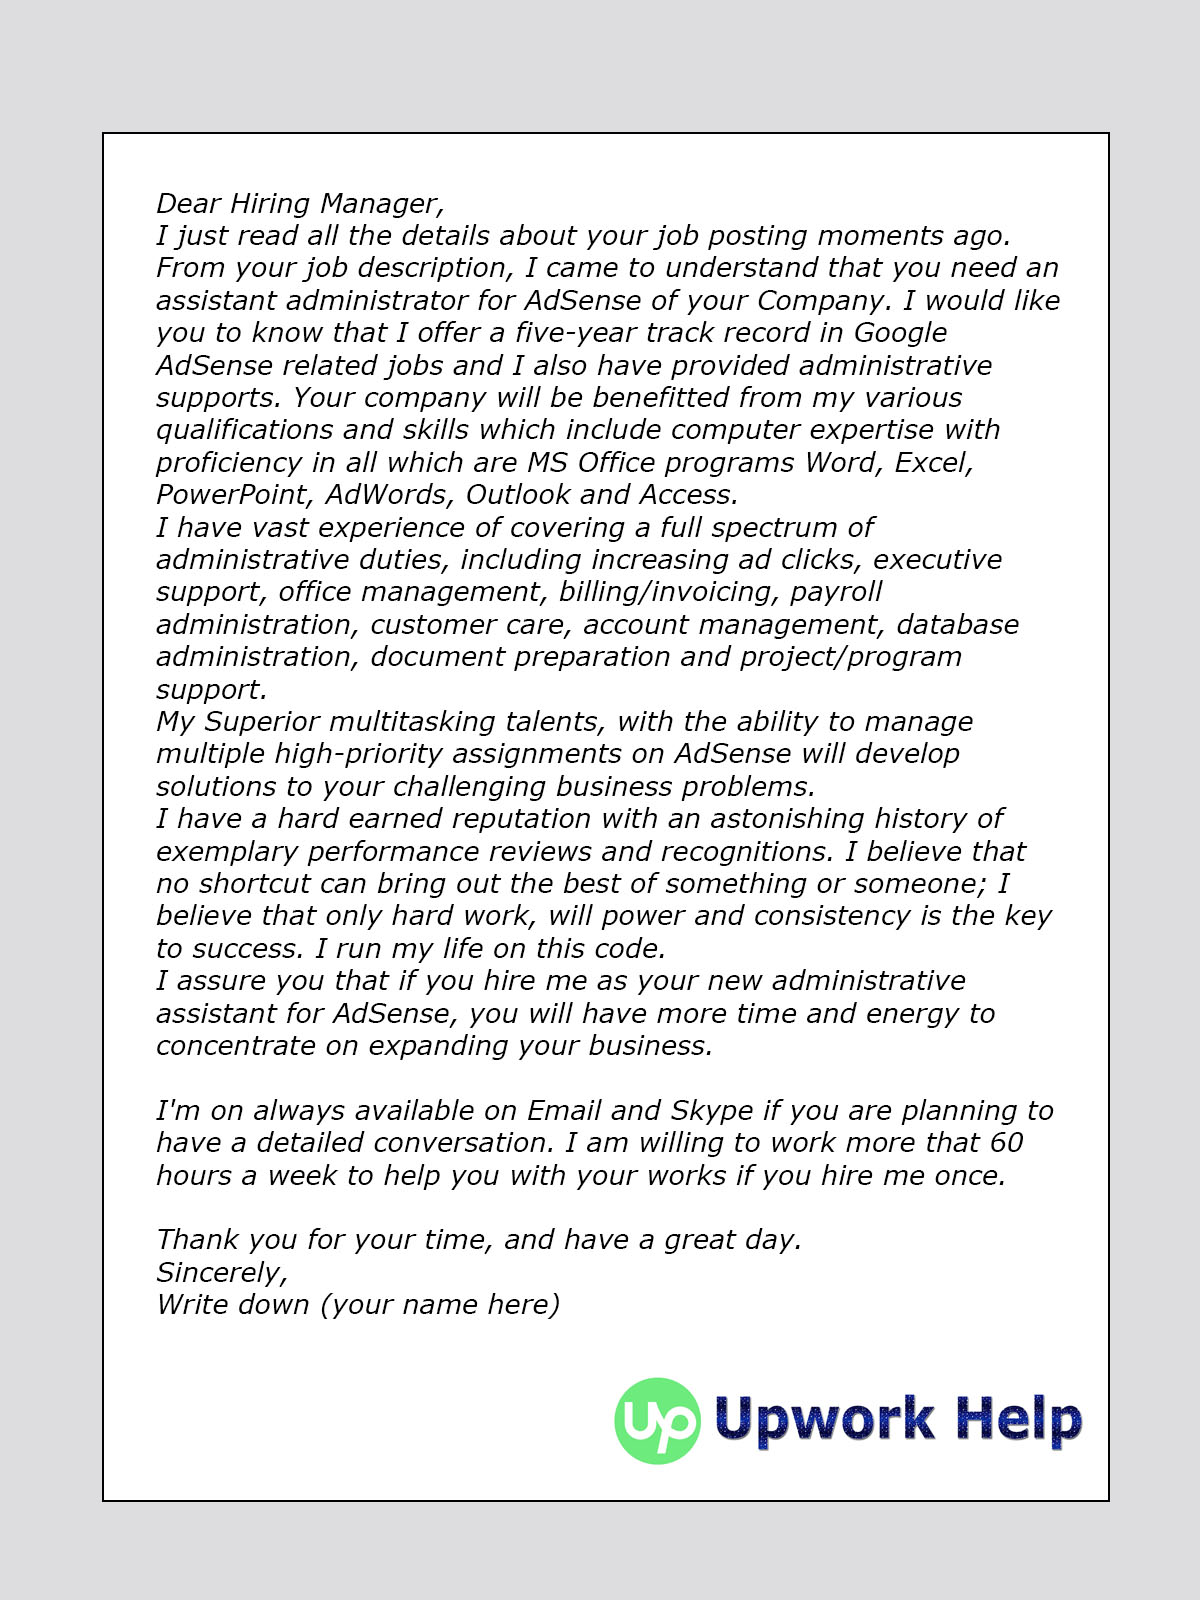 ppc cover letter for upwork